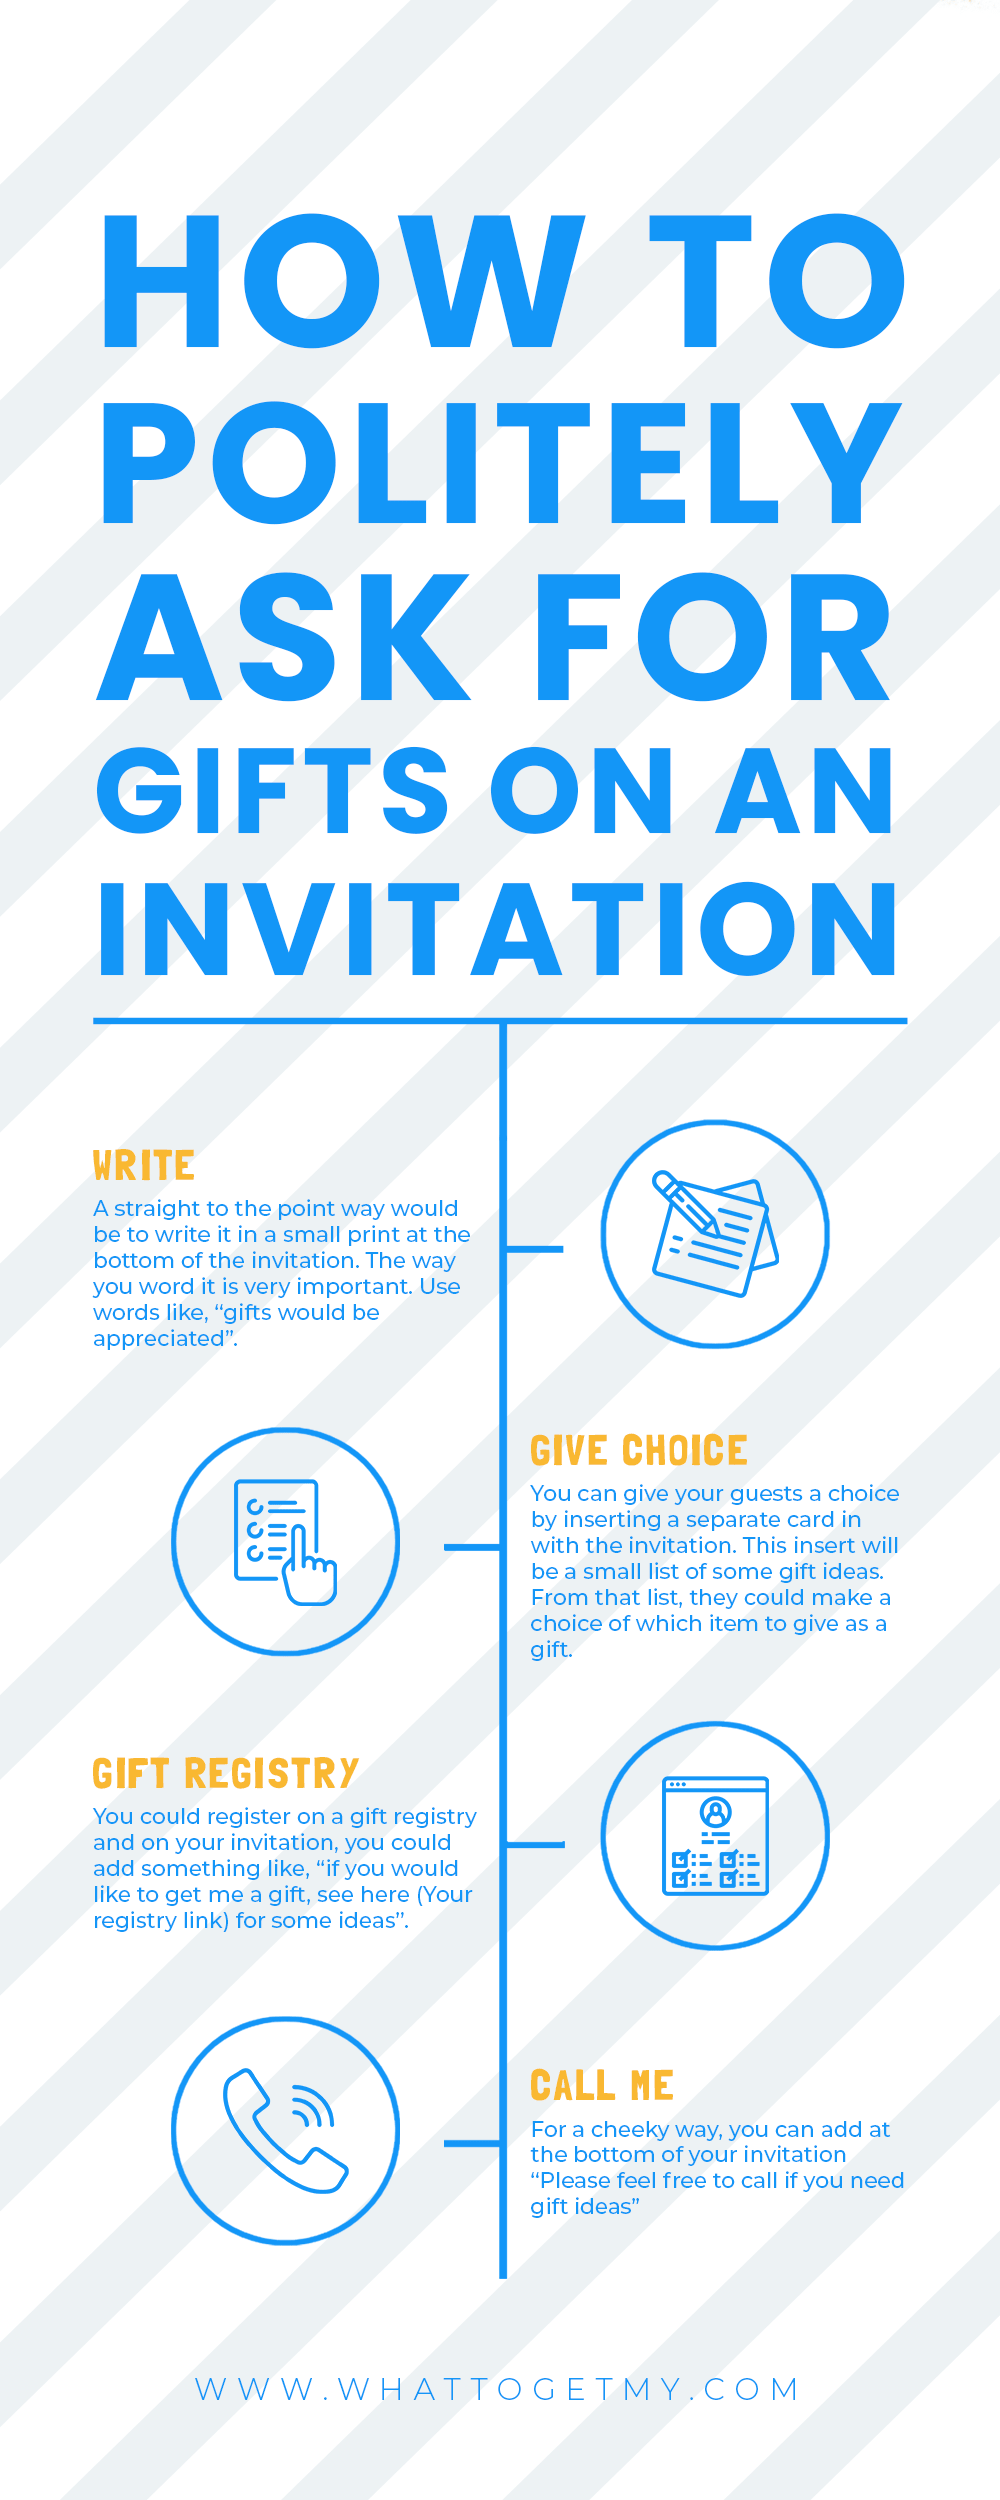 Infographic How to politely ask for gifts on an invitation